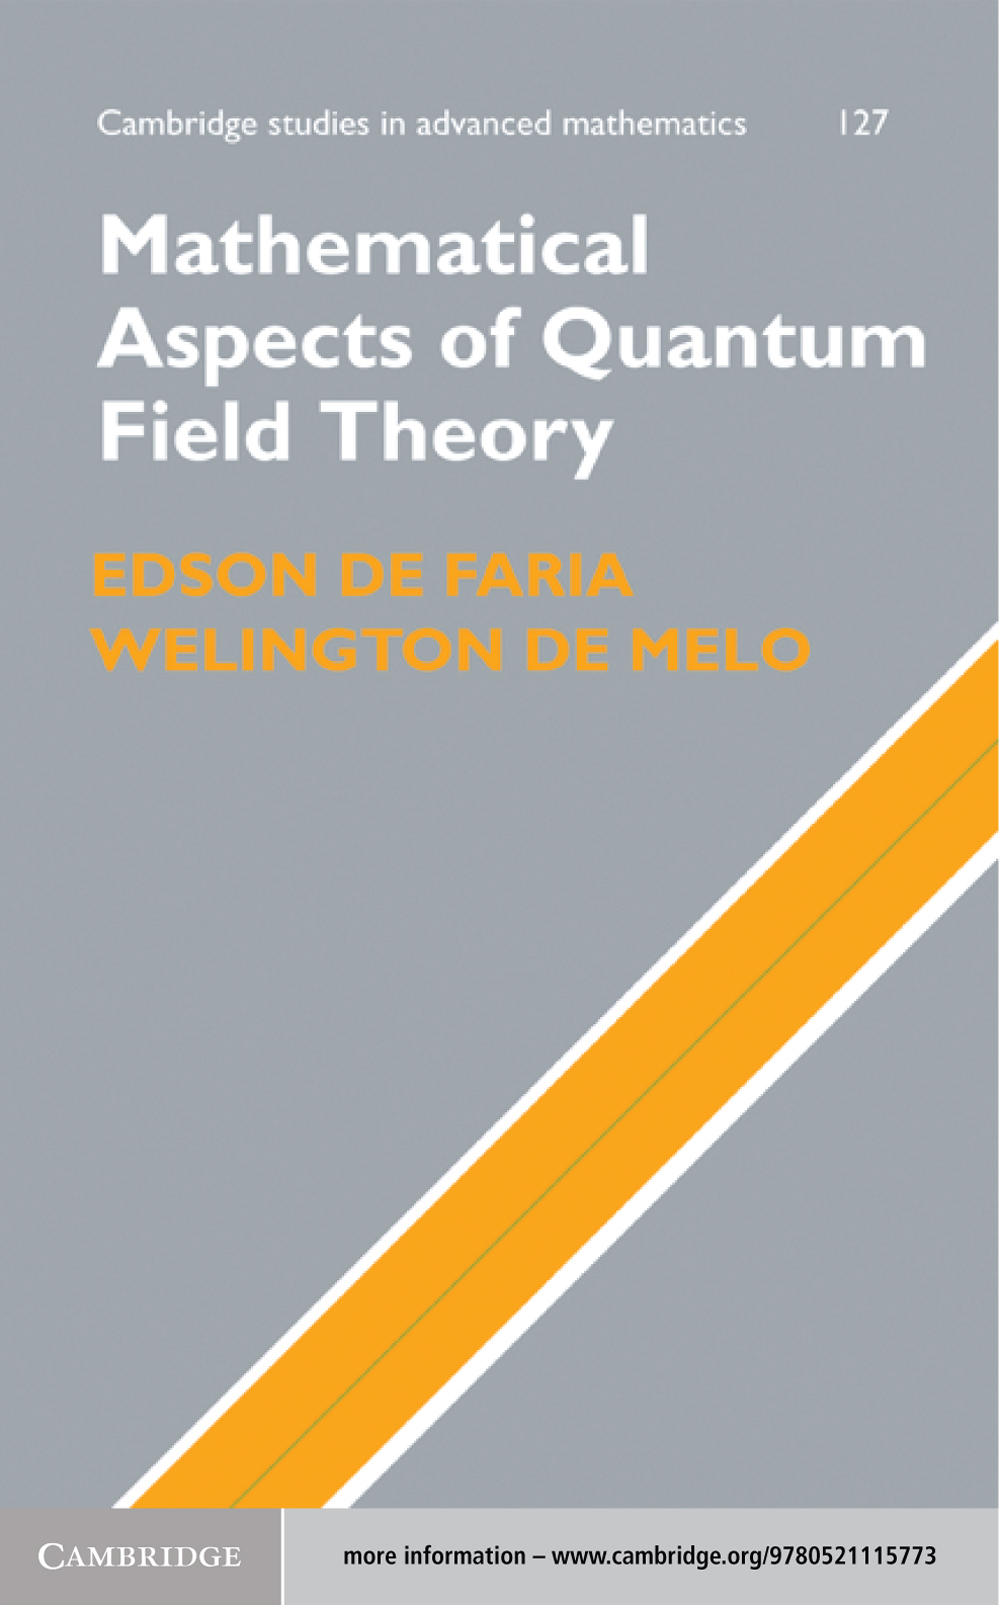 Mathematical Aspects of Quantum Field Theory